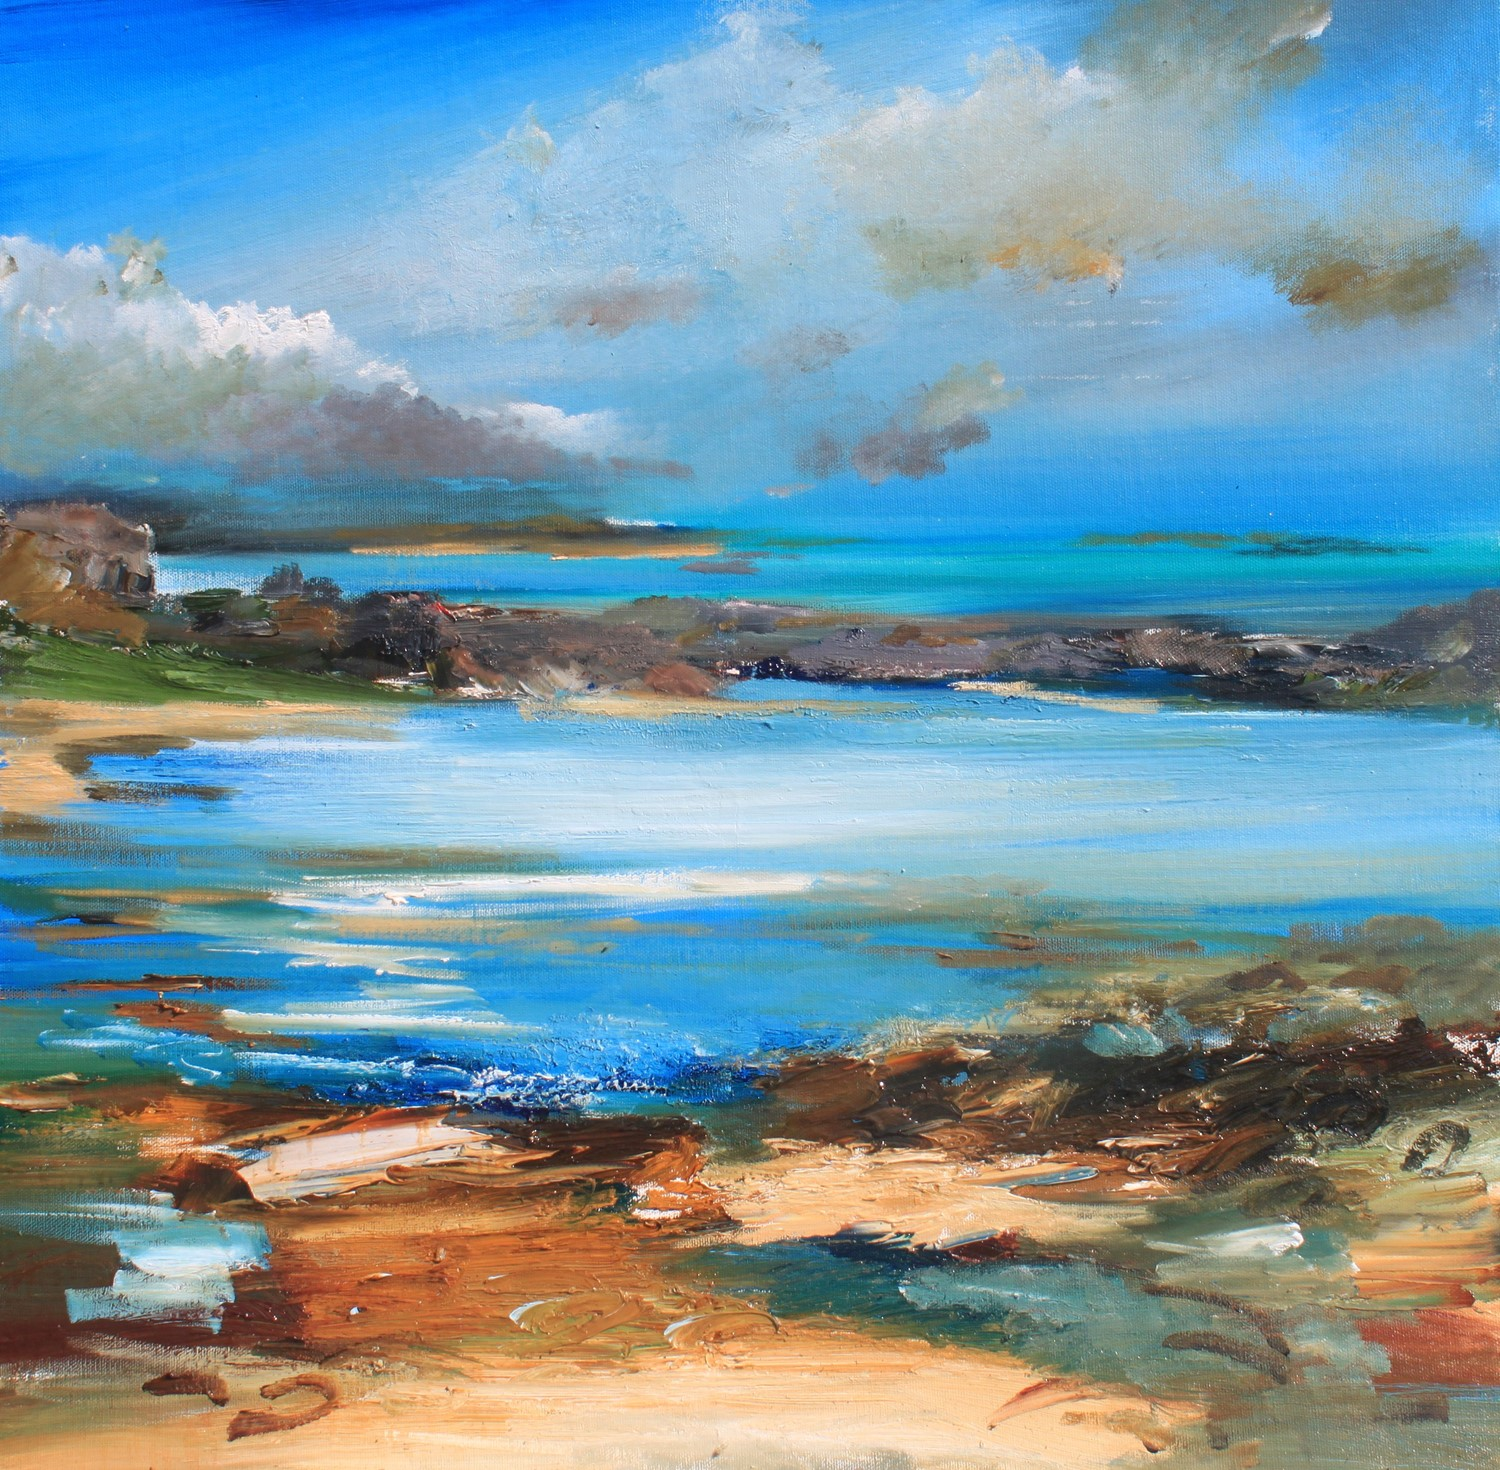 'Rock Pooling Bay' by artist Rosanne Barr